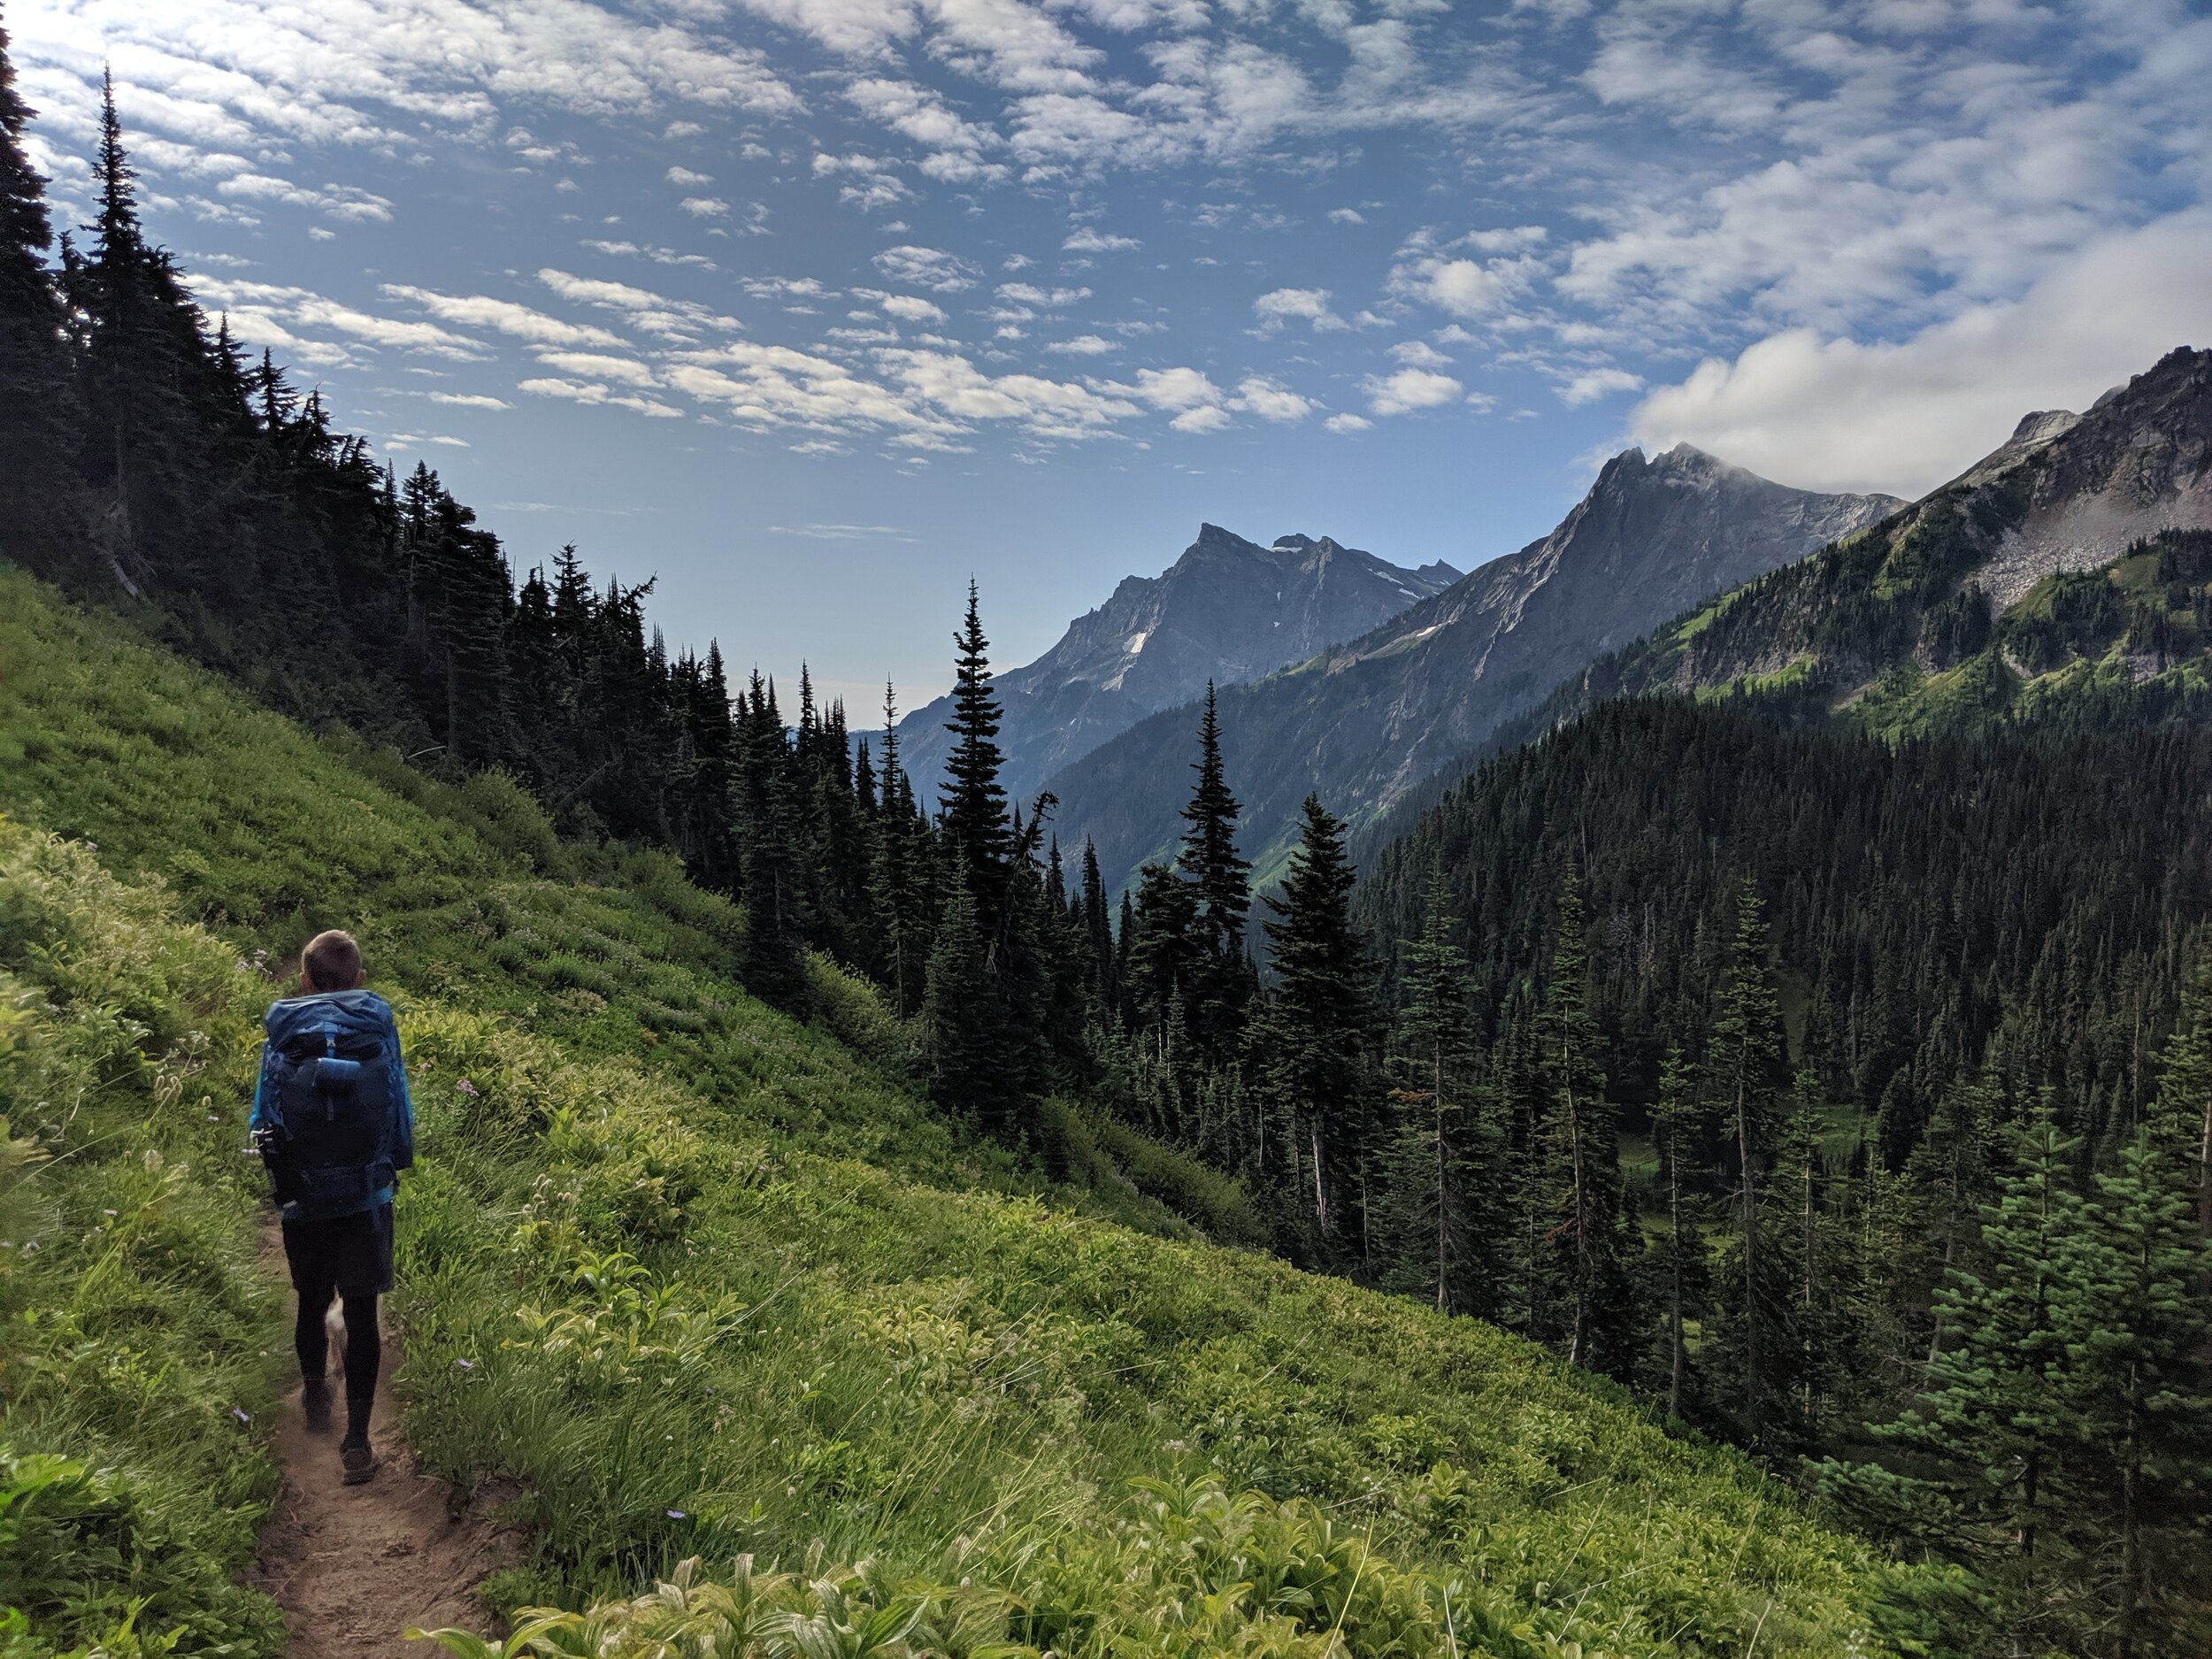 Hiking at Buck Creek Pass in the Glacier Peak Wilderness